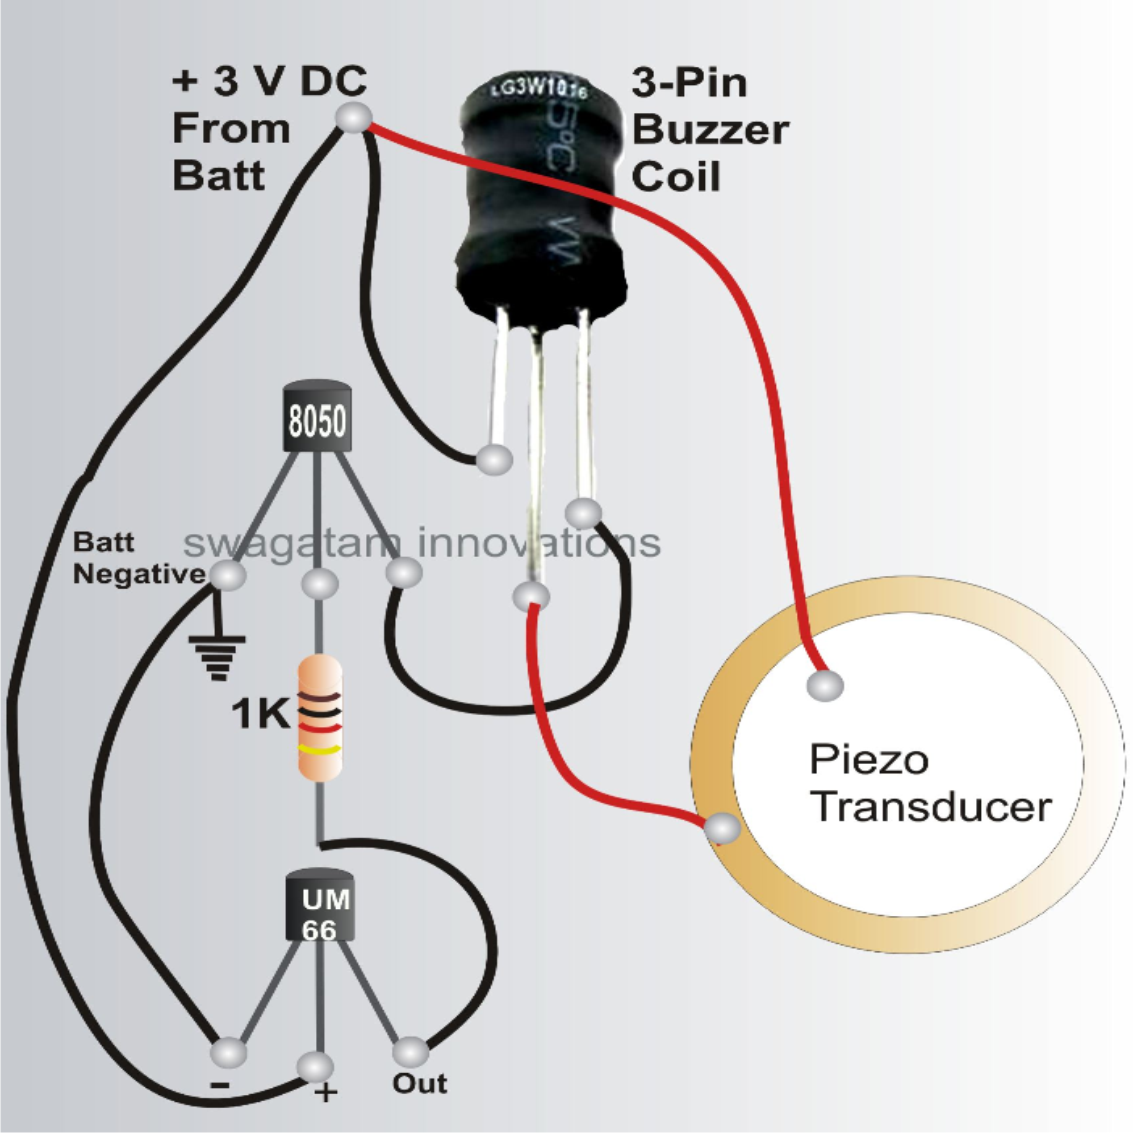 hight resolution of bicycle musical horn circuit using 27mm piezo transducer and um66 horn relay wiring musical horn diagrams